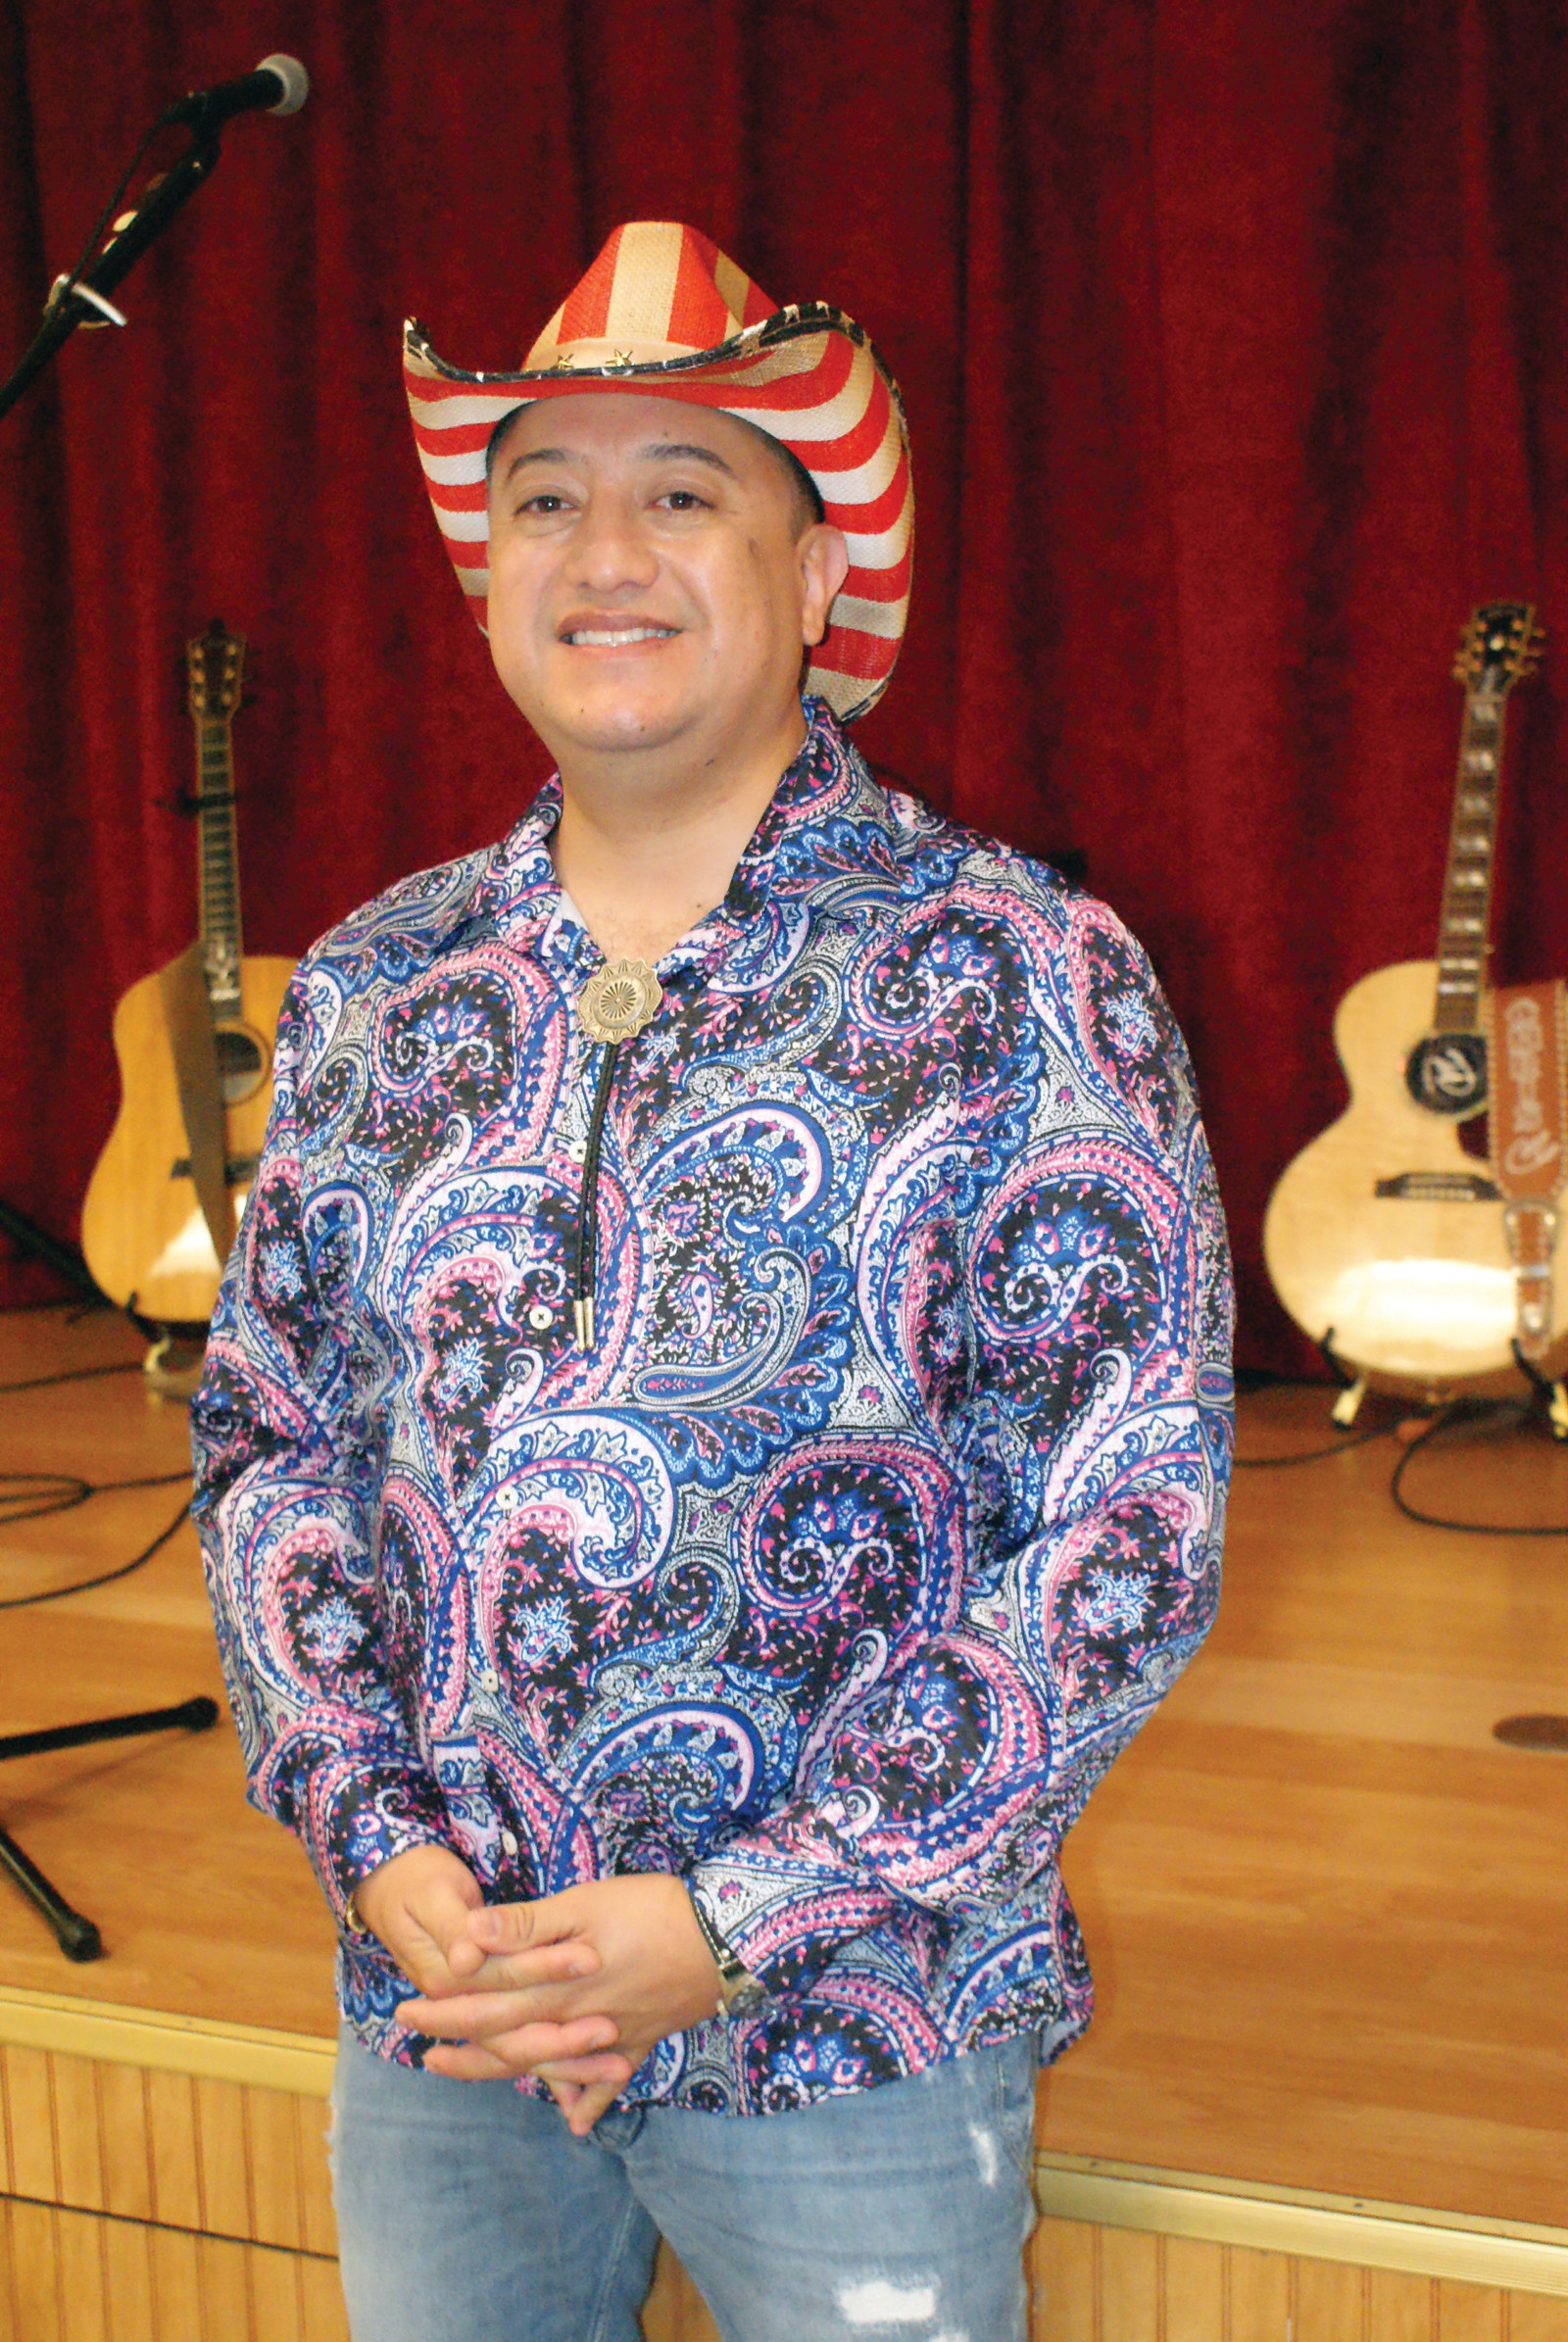 YEEHAW: Pictured is RSVP Director David Quiroa dressed for Country Night at the senior center.